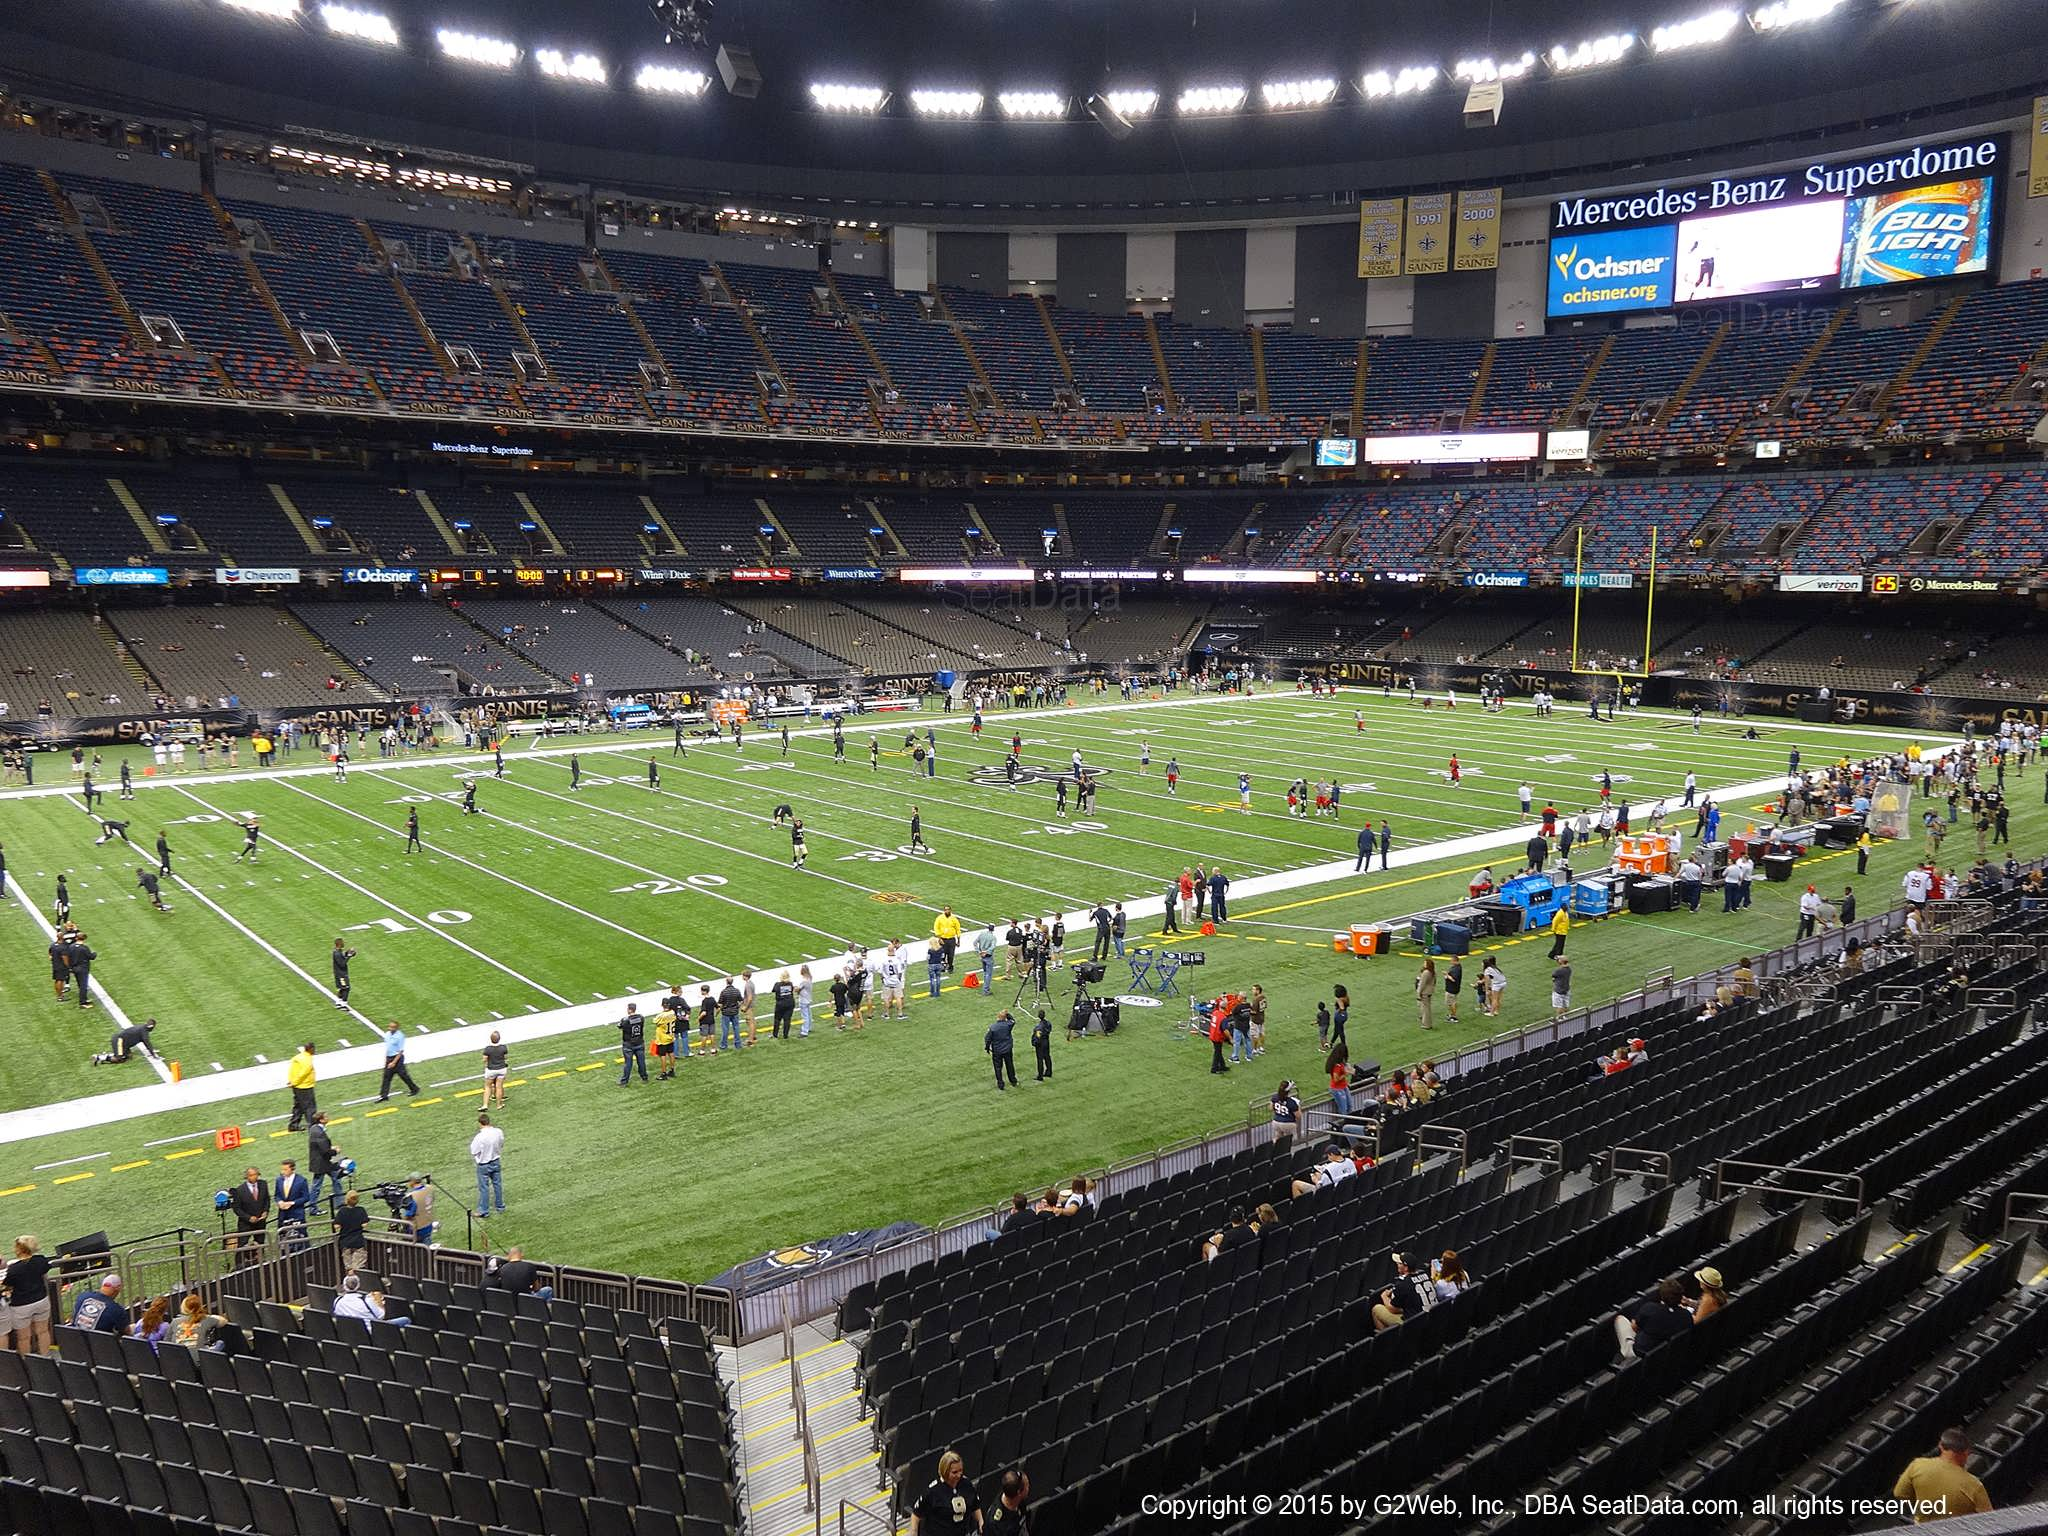 Seat view from section 231 at the Mercedes-Benz Superdome, home of the New Orleans Saints